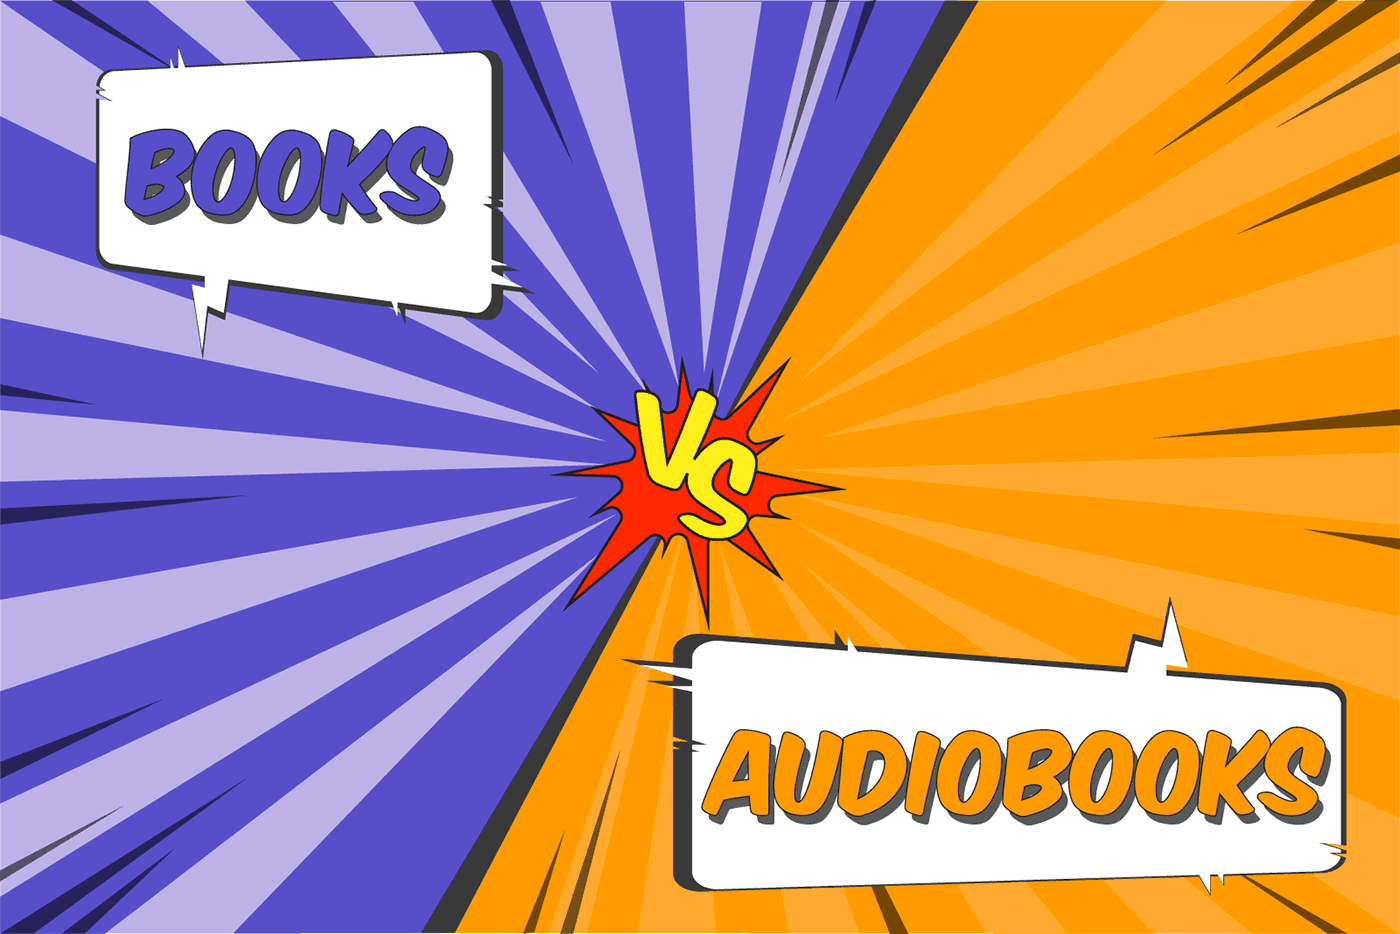 Books vs Audiobooks Pros and Cons